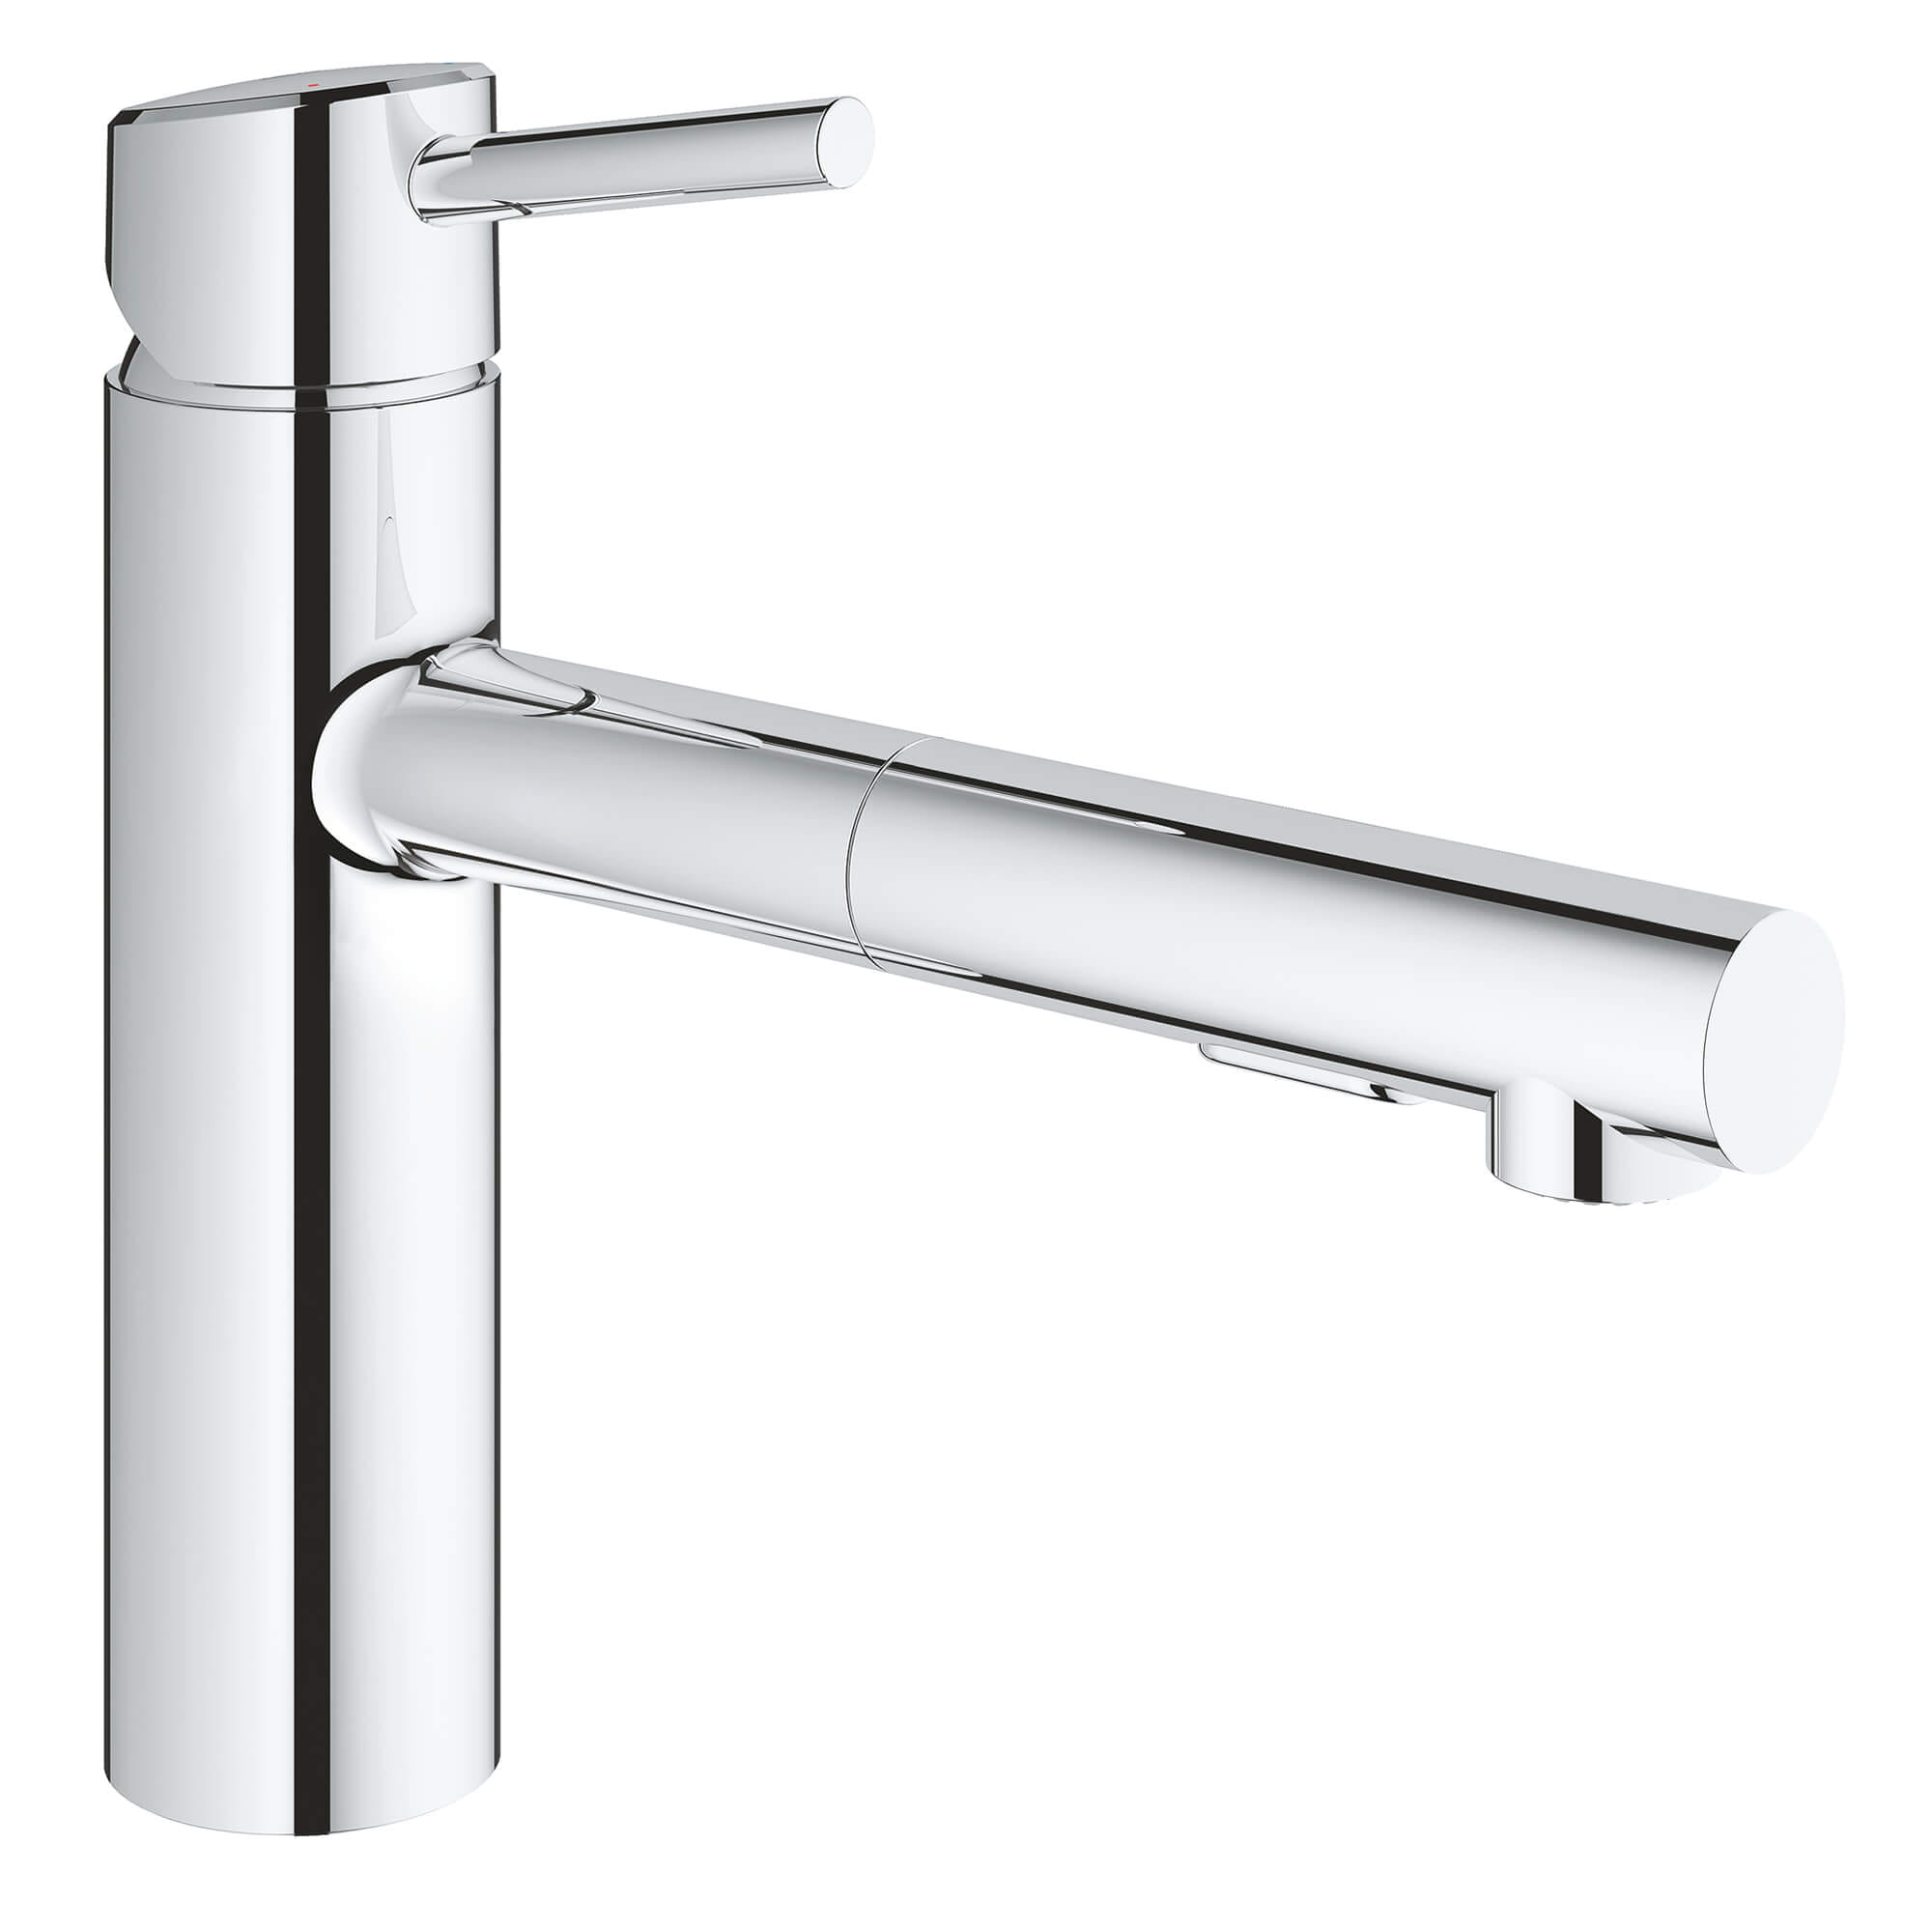 Single Handle Pull Out Kitchen Faucet Dual Spray 15 GPM GROHE CHROME